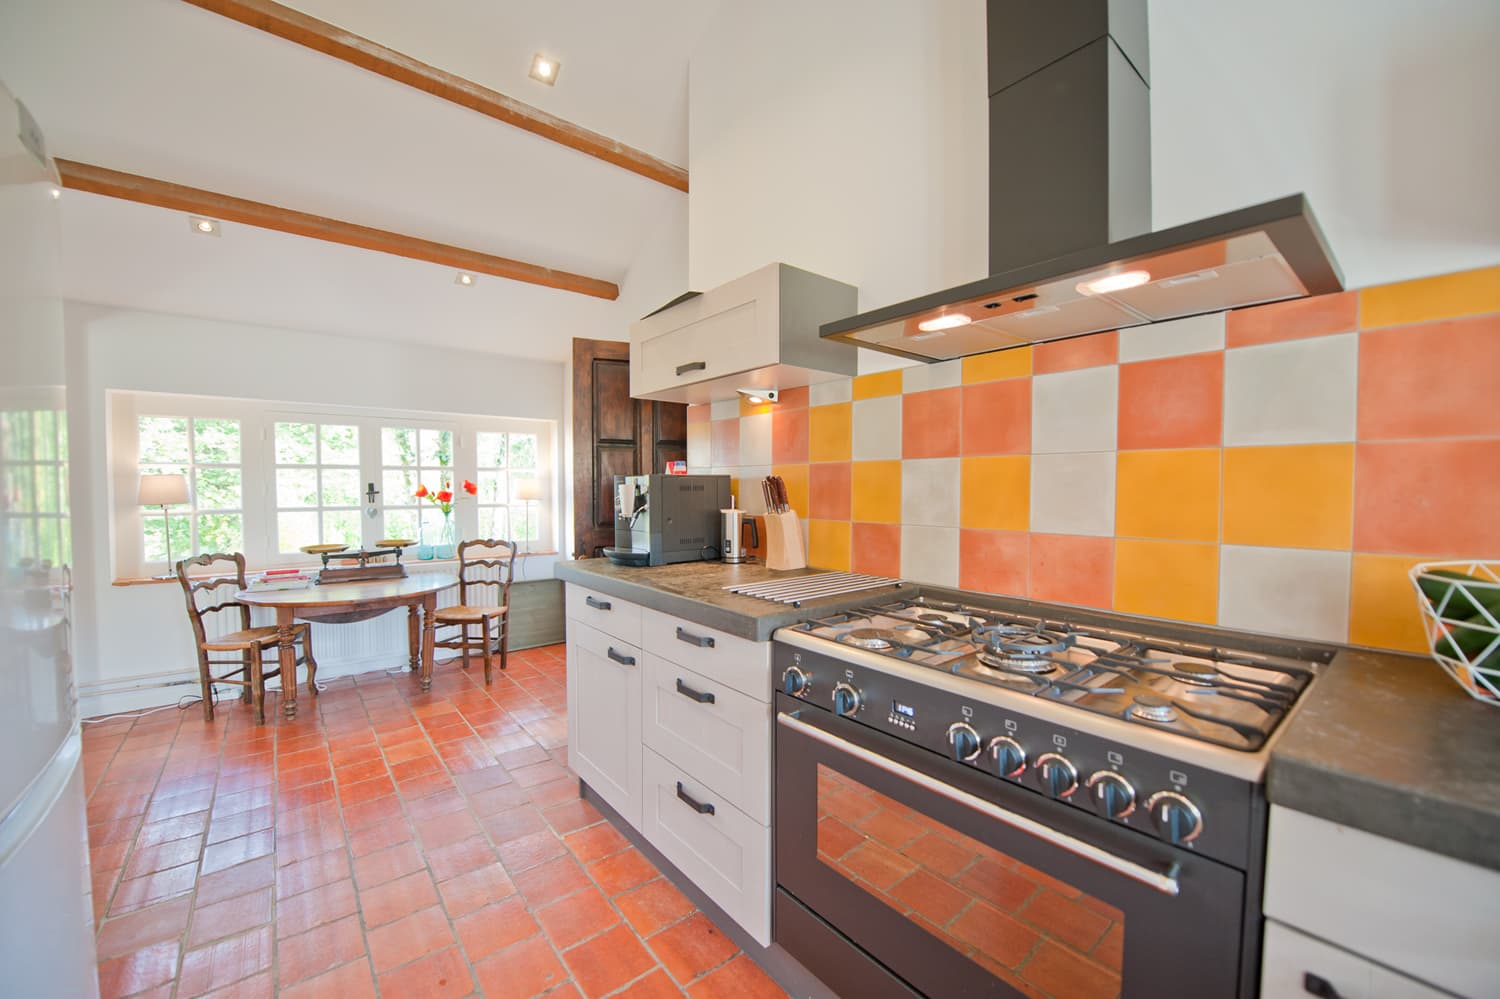 Kitchen in Lot-et-Garonne rental accommodation